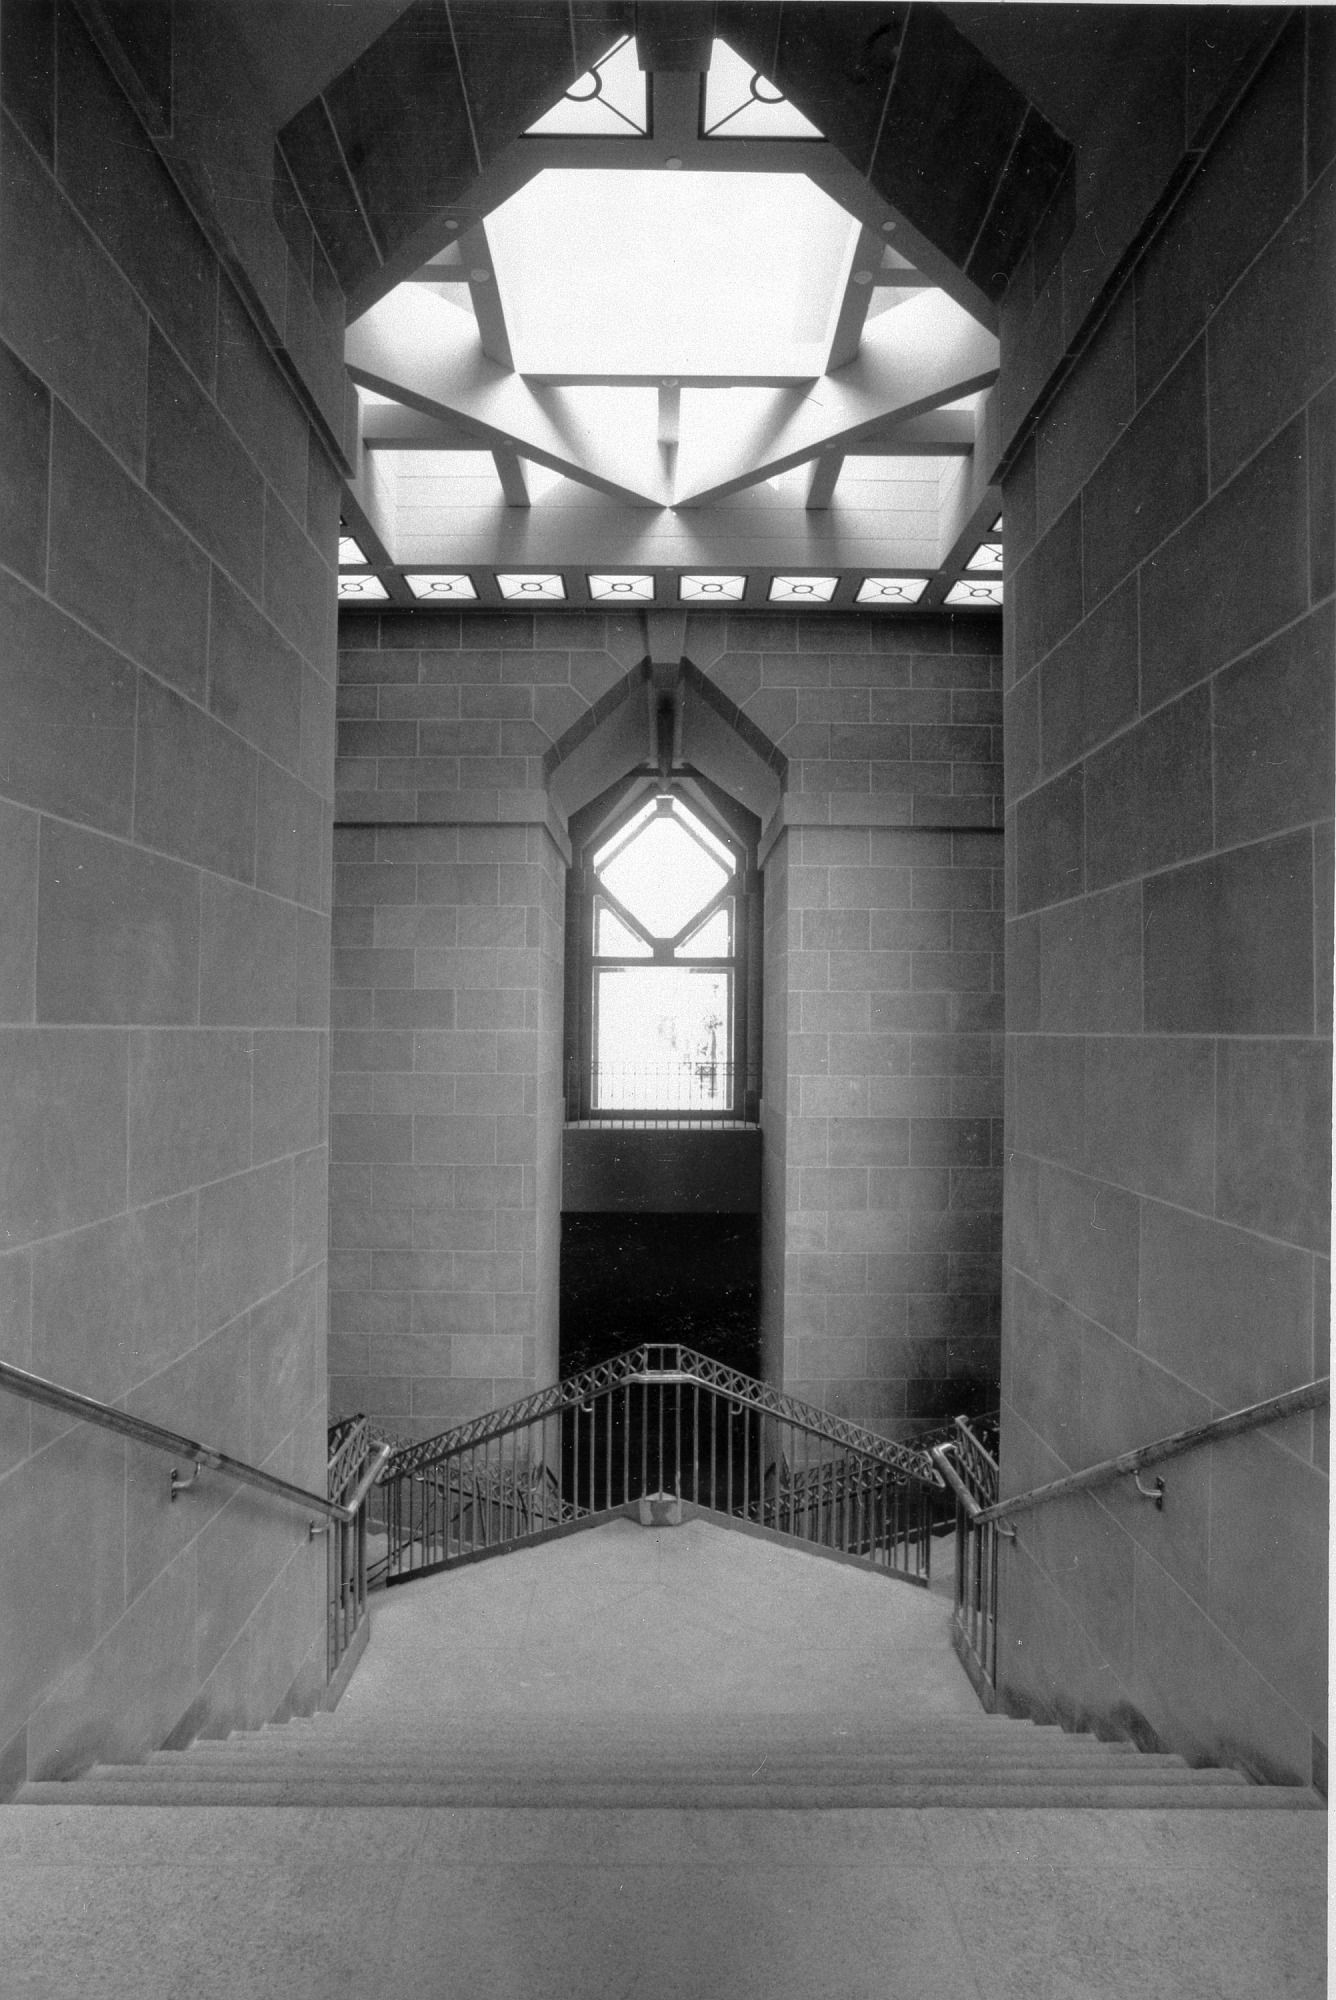 Grand Staircase in AMSG, by Lautman, Robert, 1987, Smithsonian Archives - History Div, 96-1388.